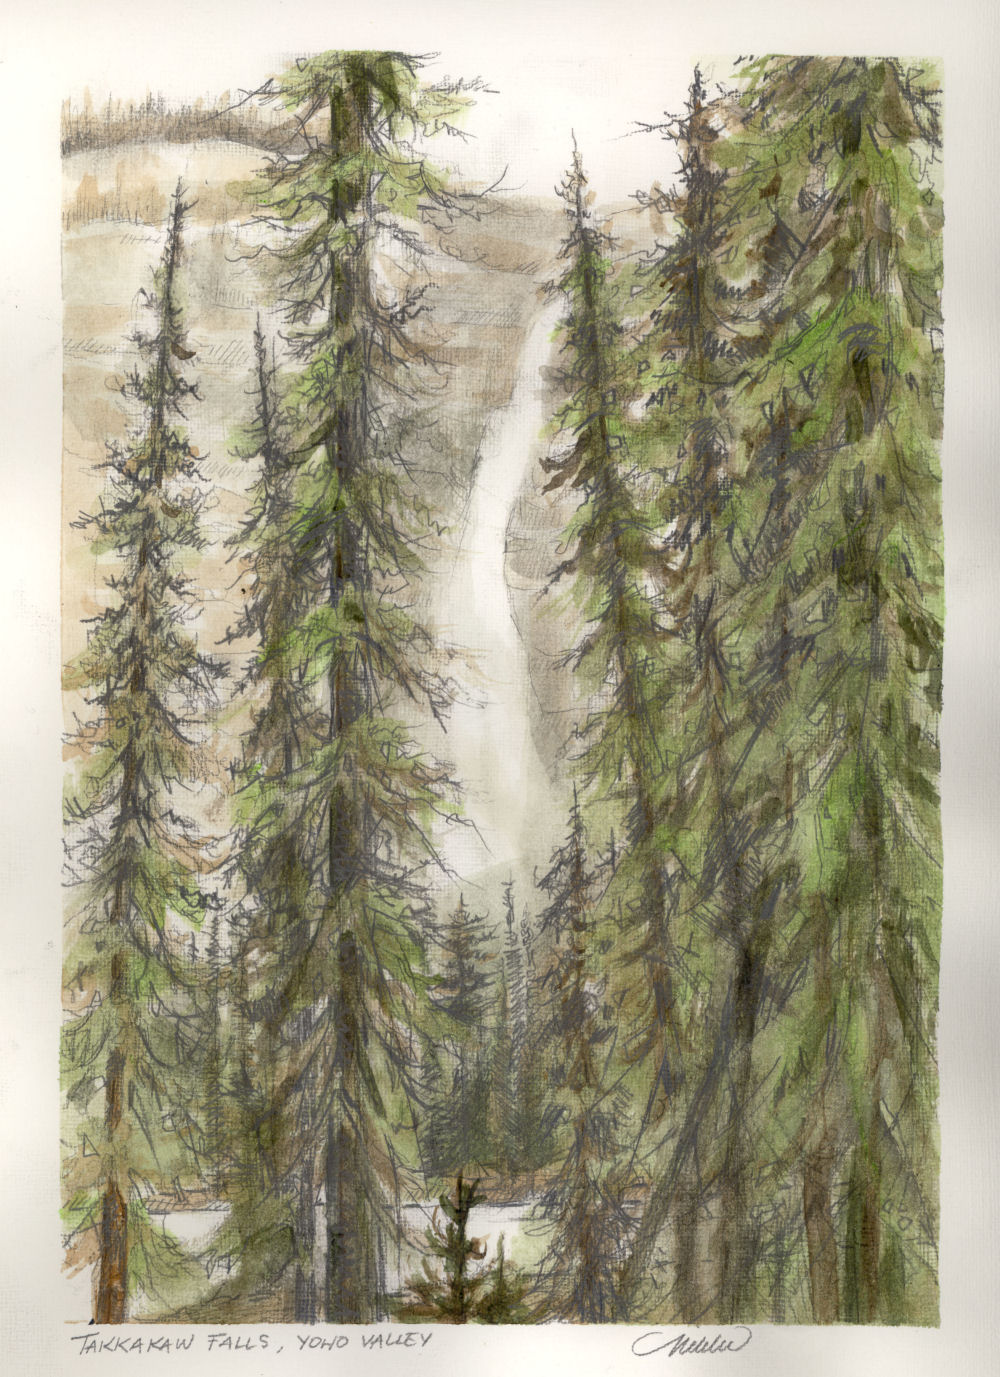 Takkakaw Falls, Yoho National Park near Field BC Canada, 12H x 9W inch watercolor and graphite study from antique books of hand-colored Vandyck Photogravures of Canadian Rocky Mountains scenery. Study, private collection. Cards only